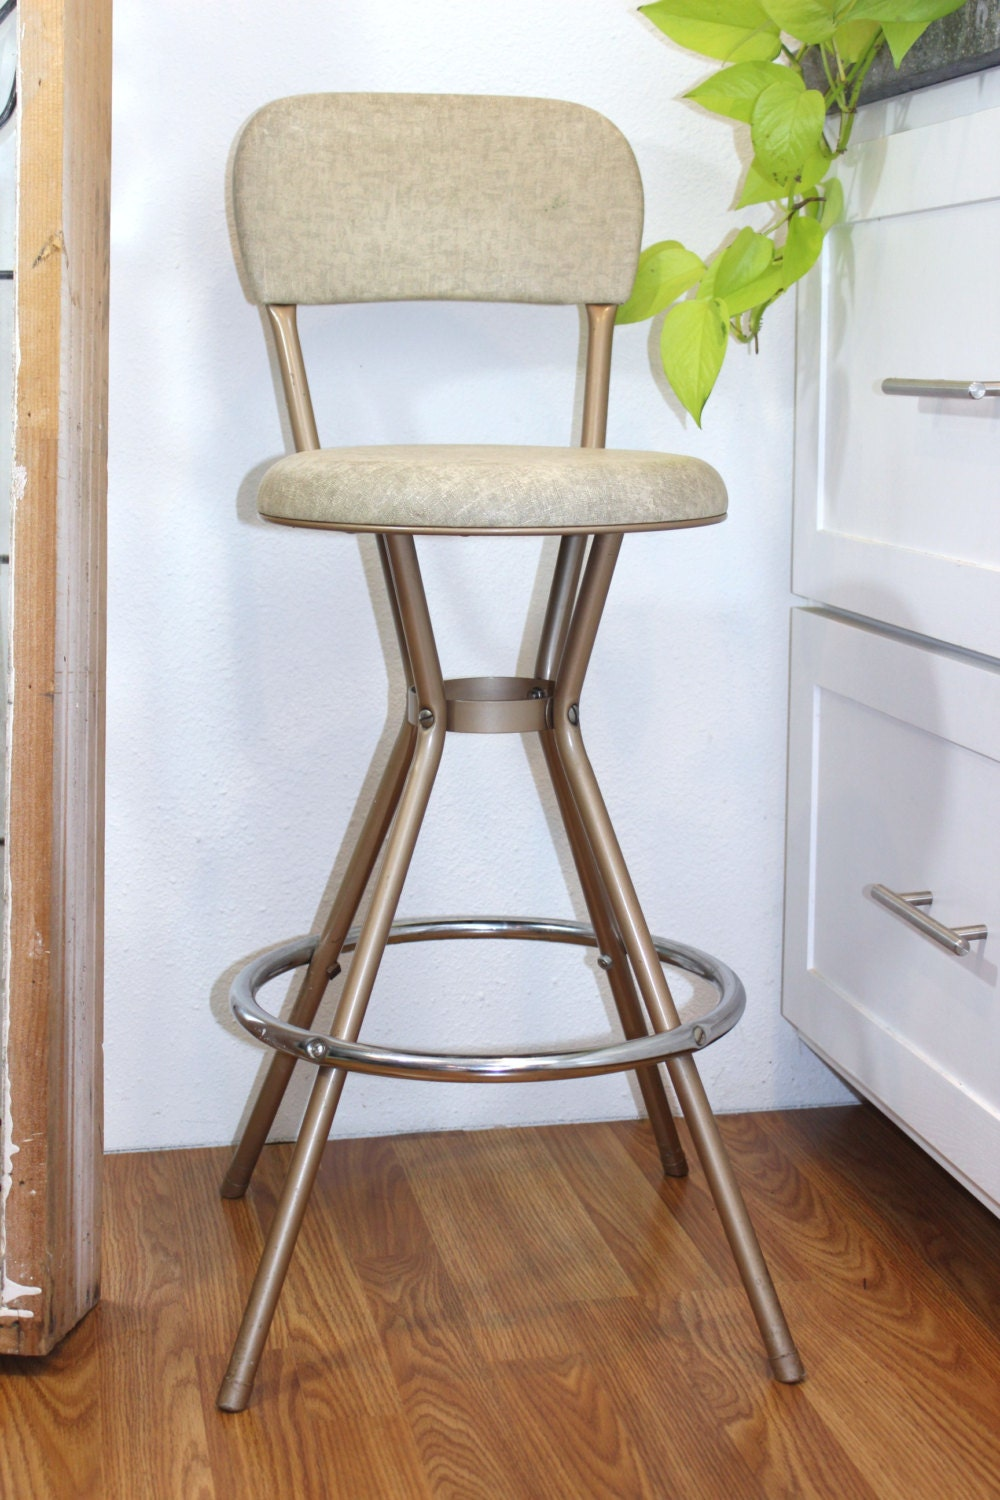 Retro Metal Cosco Swivel Kitchen Stool Chair By